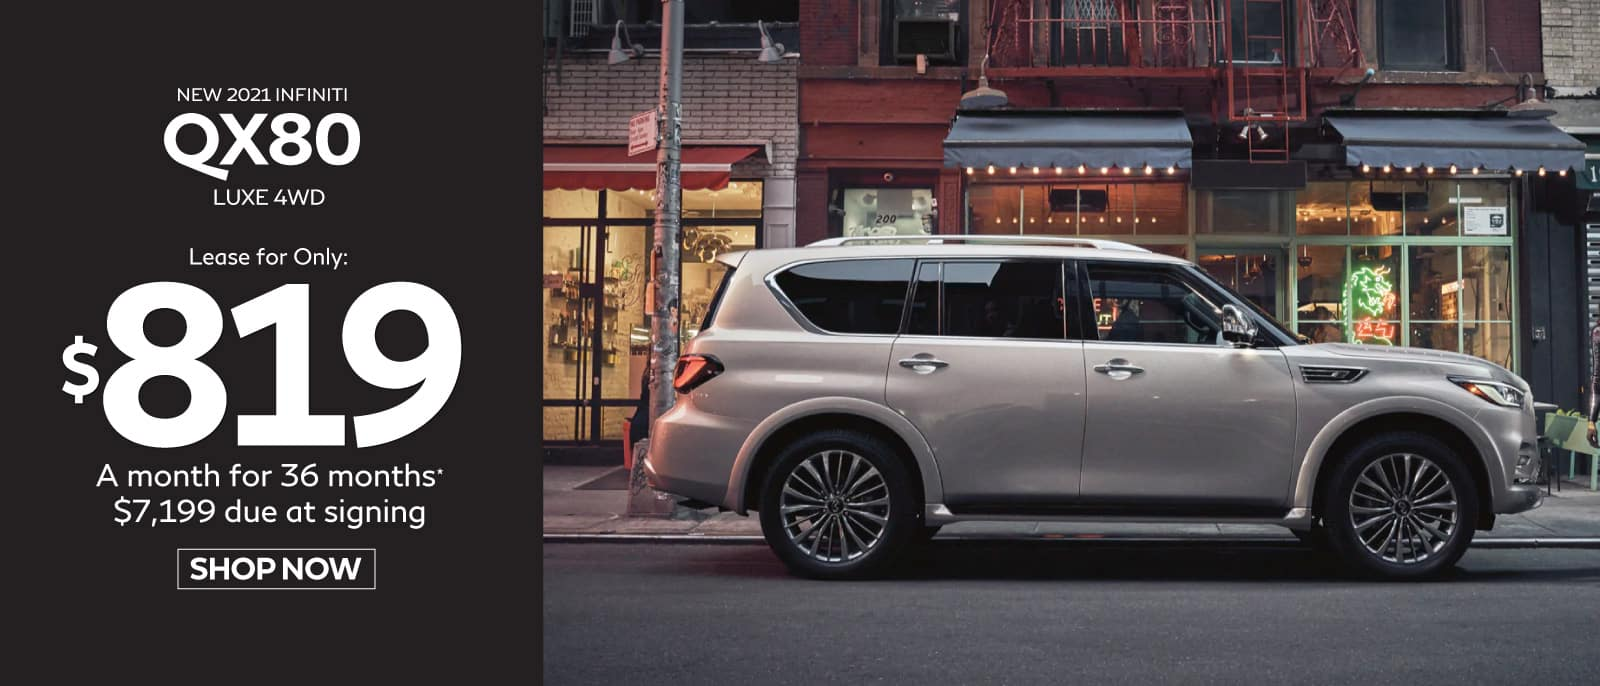 New 2021 INFINITI QX80 - Lease for only $819 a mo. for 36 mos.